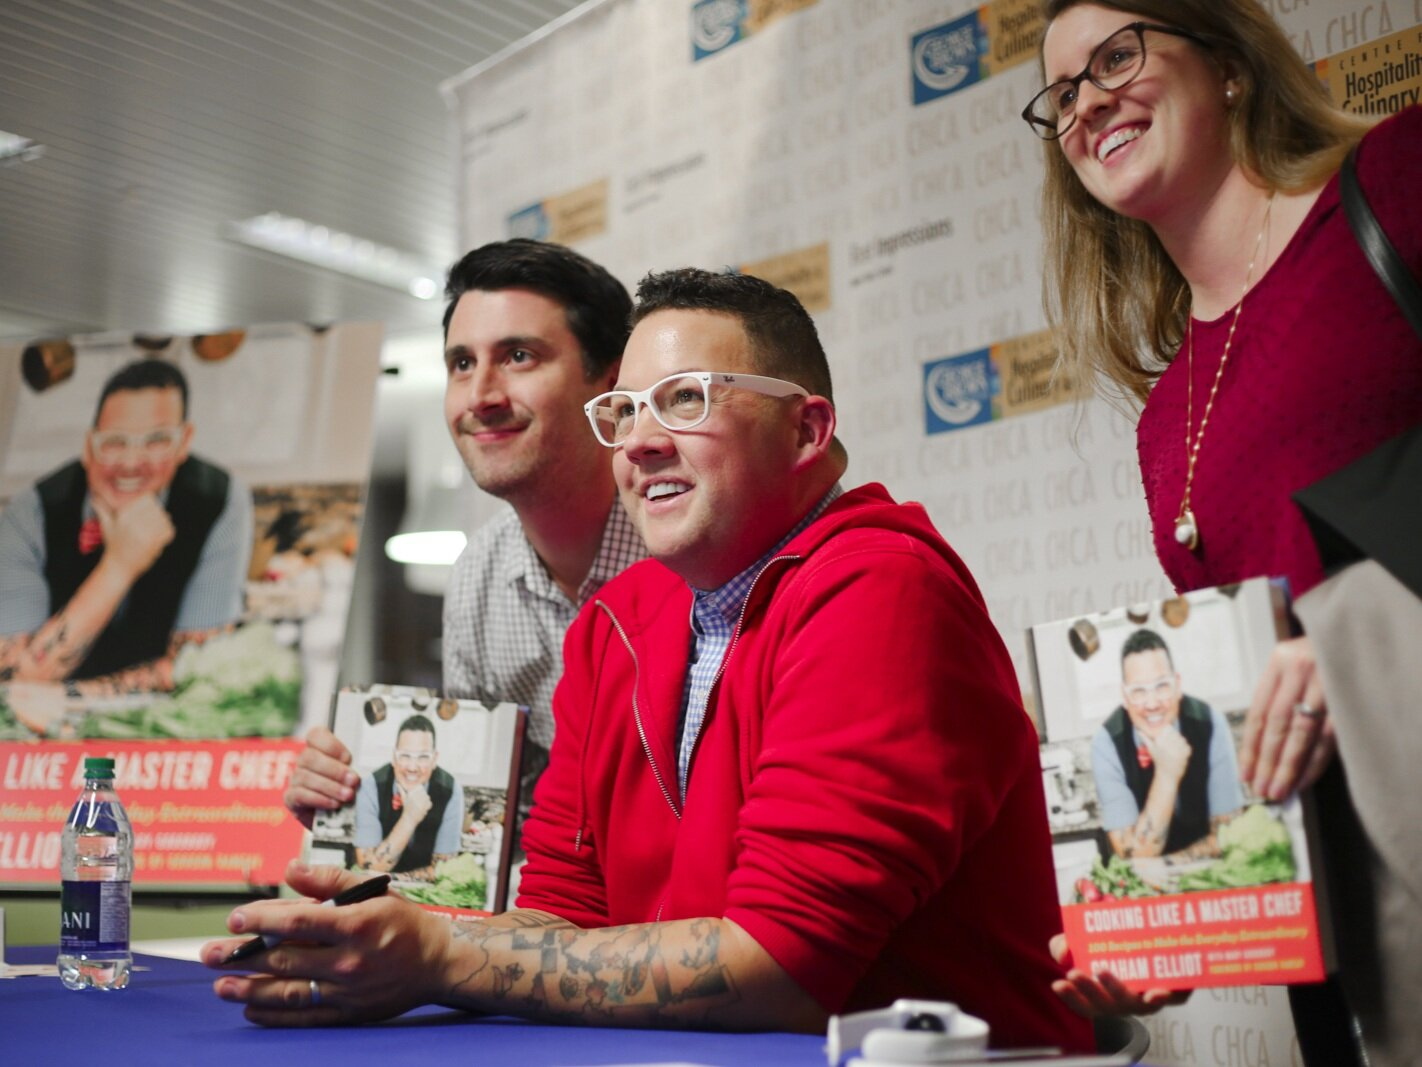 Two MIchelin Star Chef Graham Elliot signing books with guests at George Brown College's Centre for Hospitality & Culinary Arts